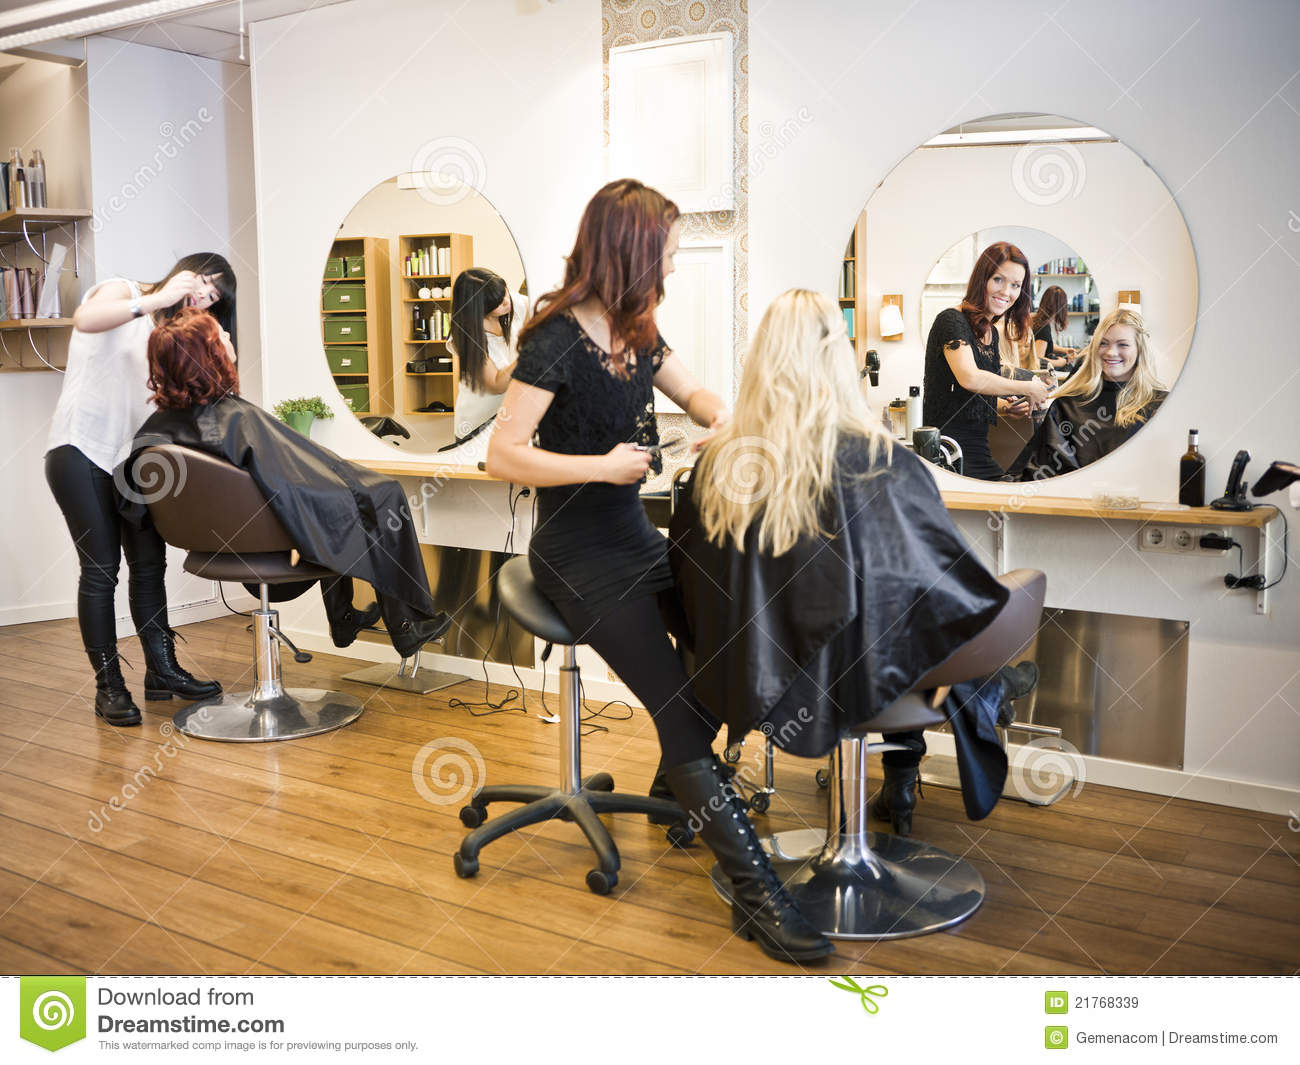 Haarsalonsituation